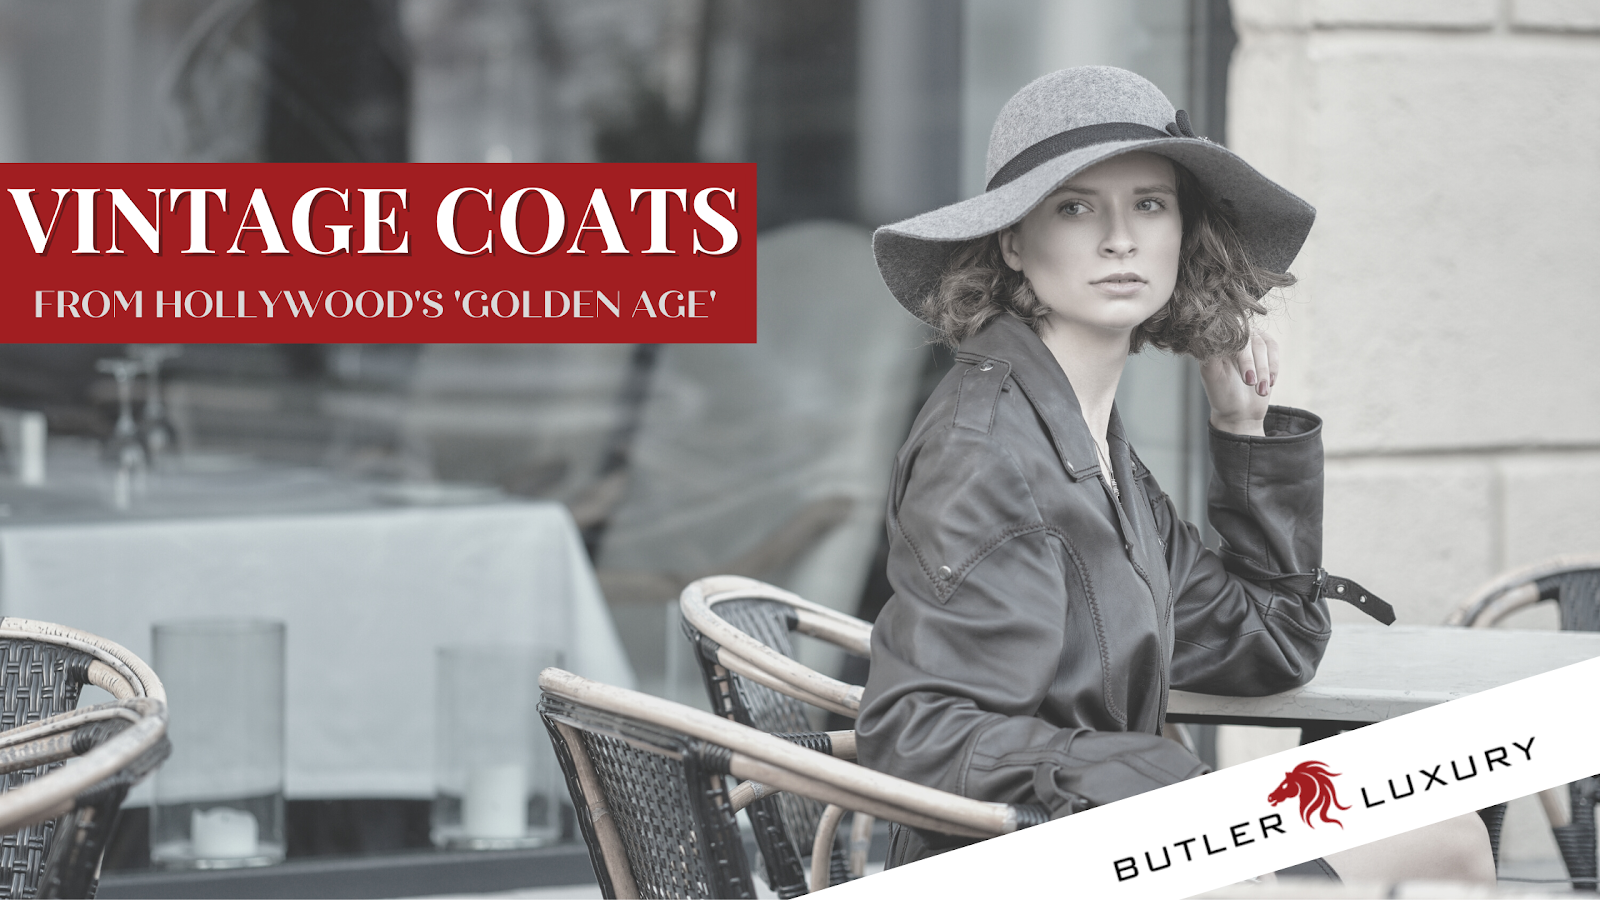 Recreate Hollywood's 'Golden Age' With These Women's Vintage Coats